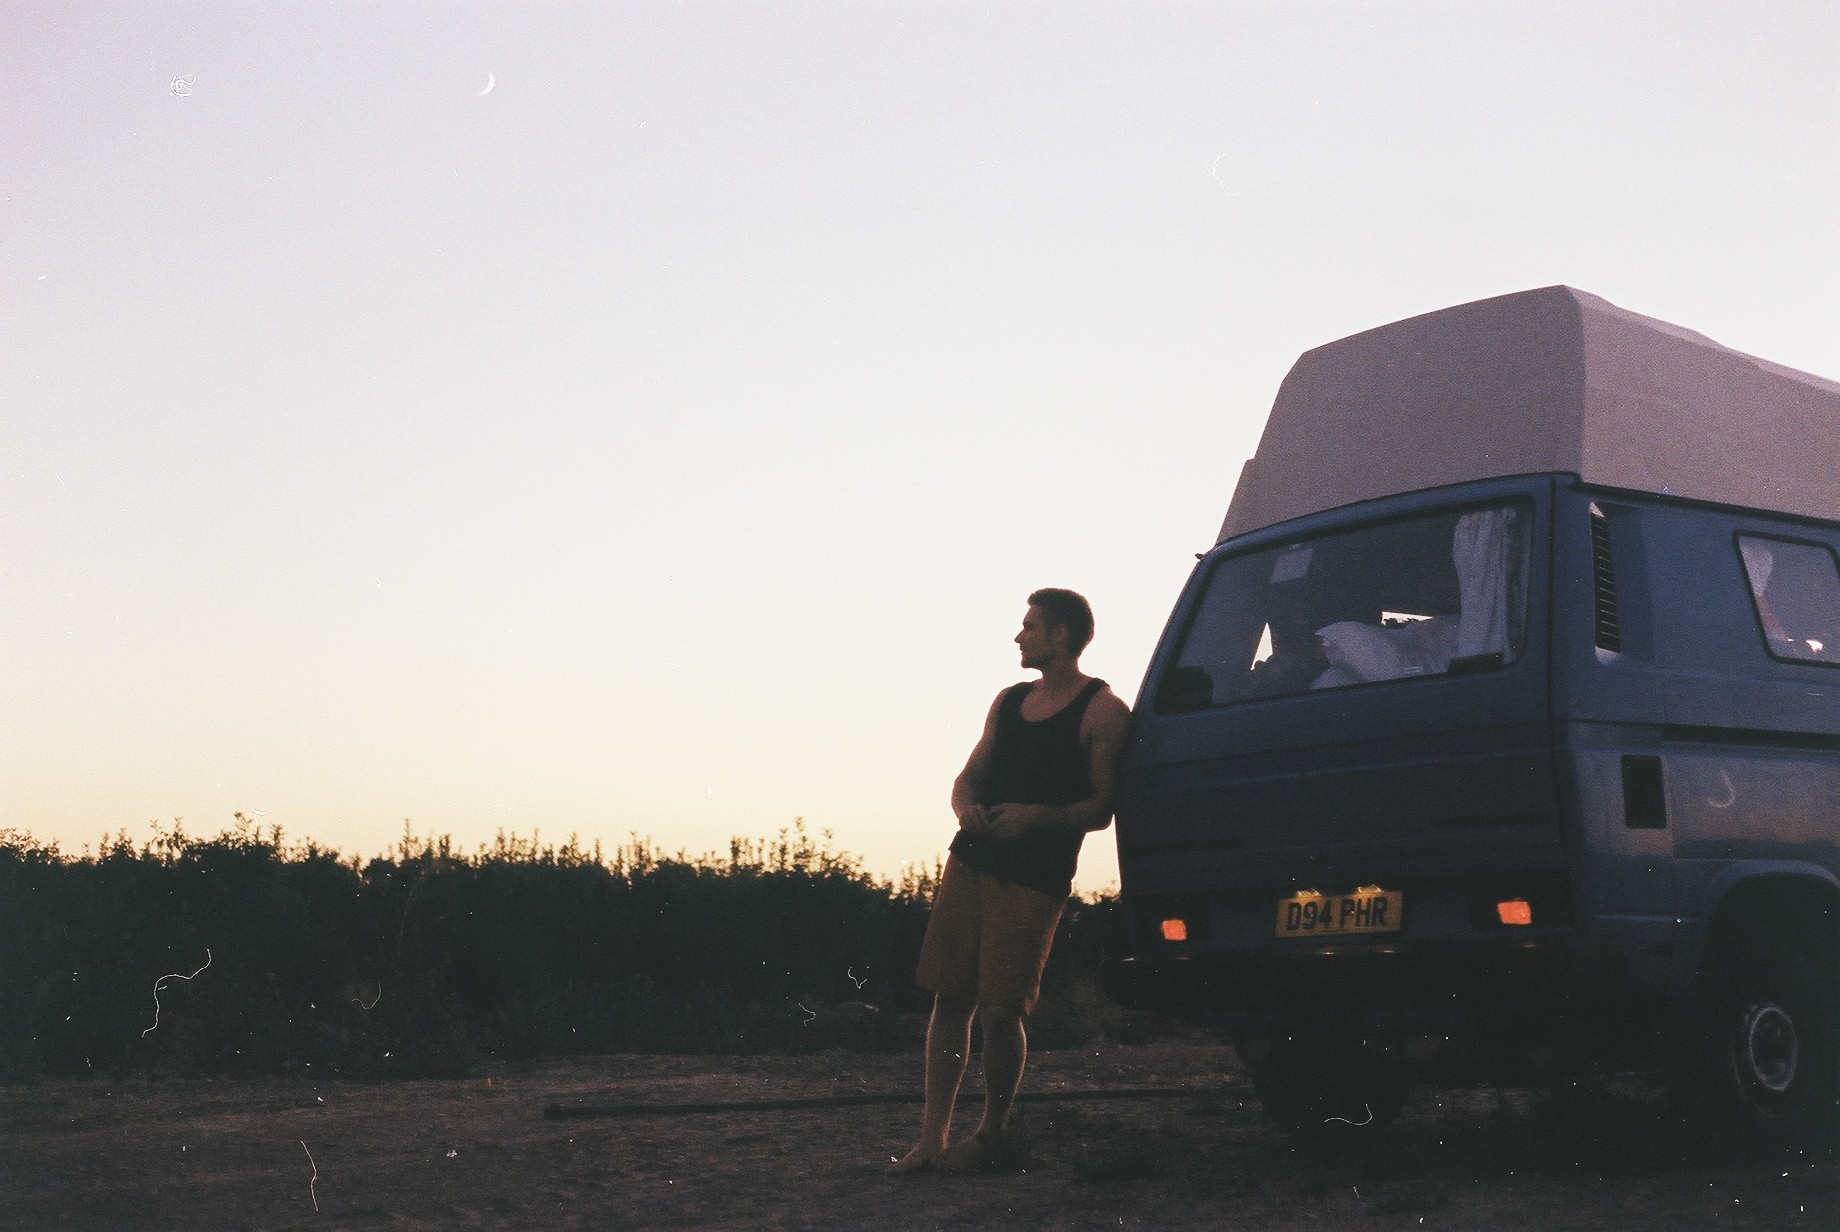 syncro, syncro life, #vanlife, van life, vanagon, canon ae1, 35mm, film camera, jack macgowan, bicycle touring apocalypse, travel, travel blogger, jack macgowan, exploration,